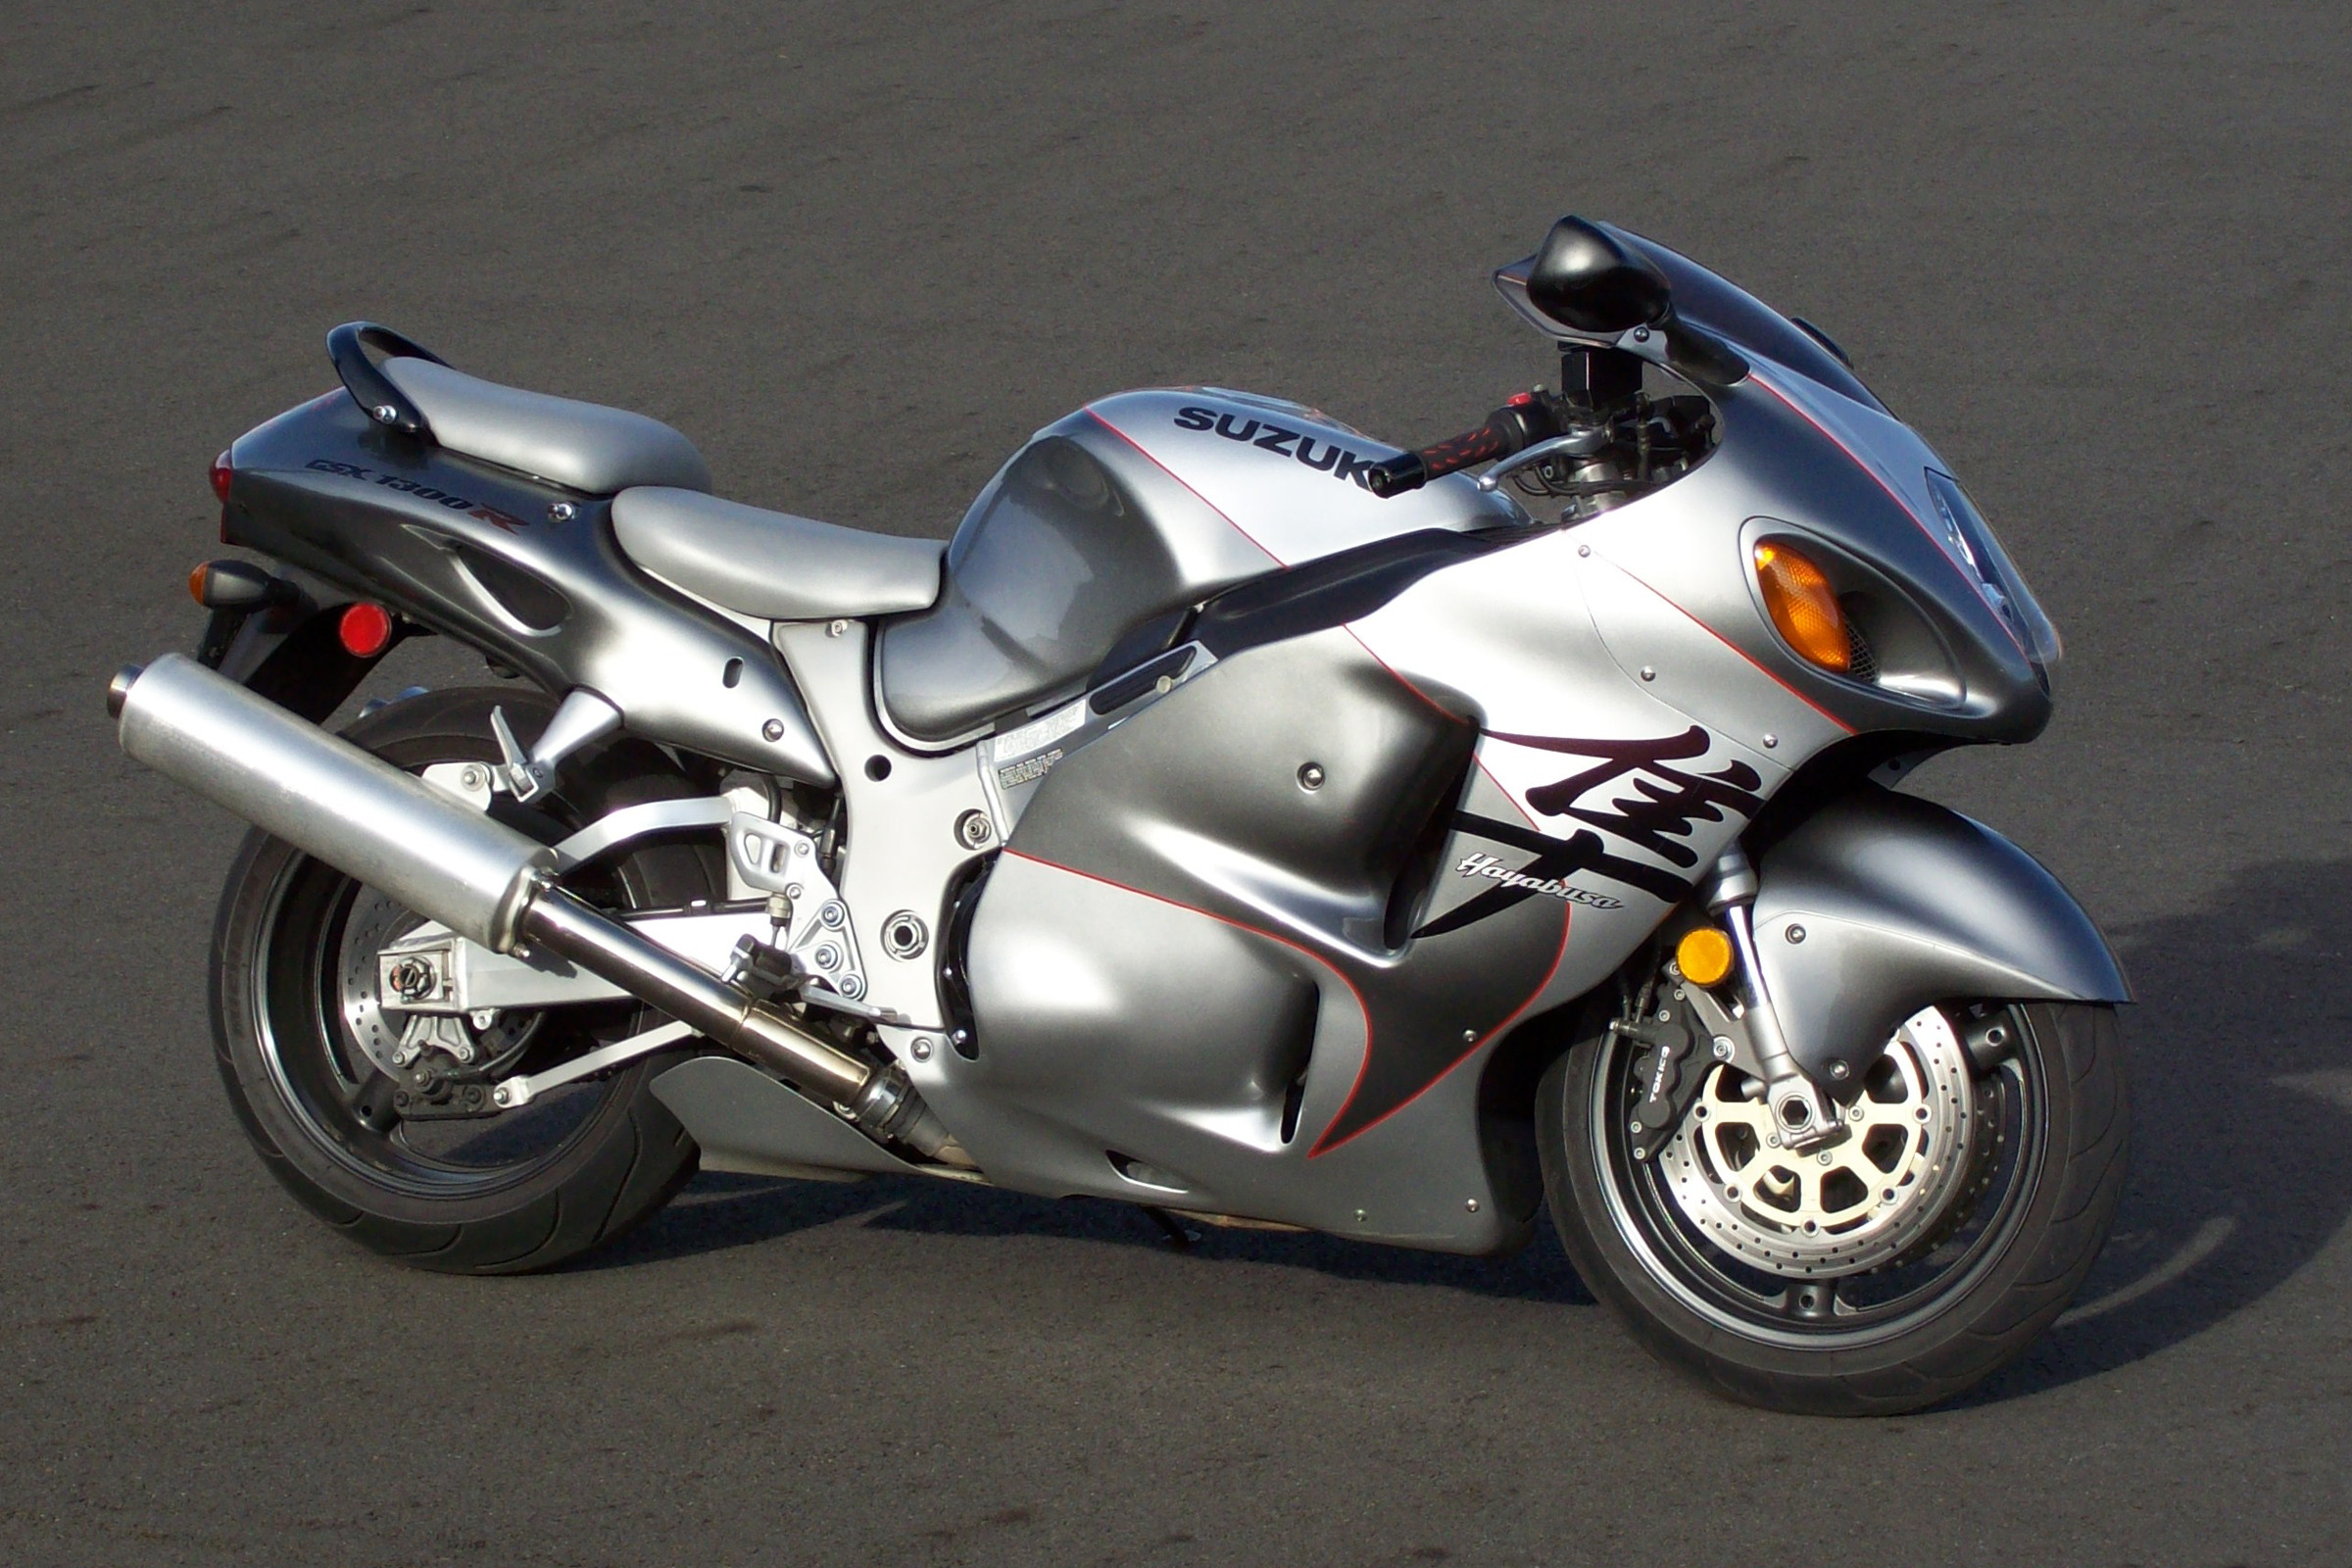 Moto Suzuki Hayabusa Side Anime Aerography Abstract Bike  .